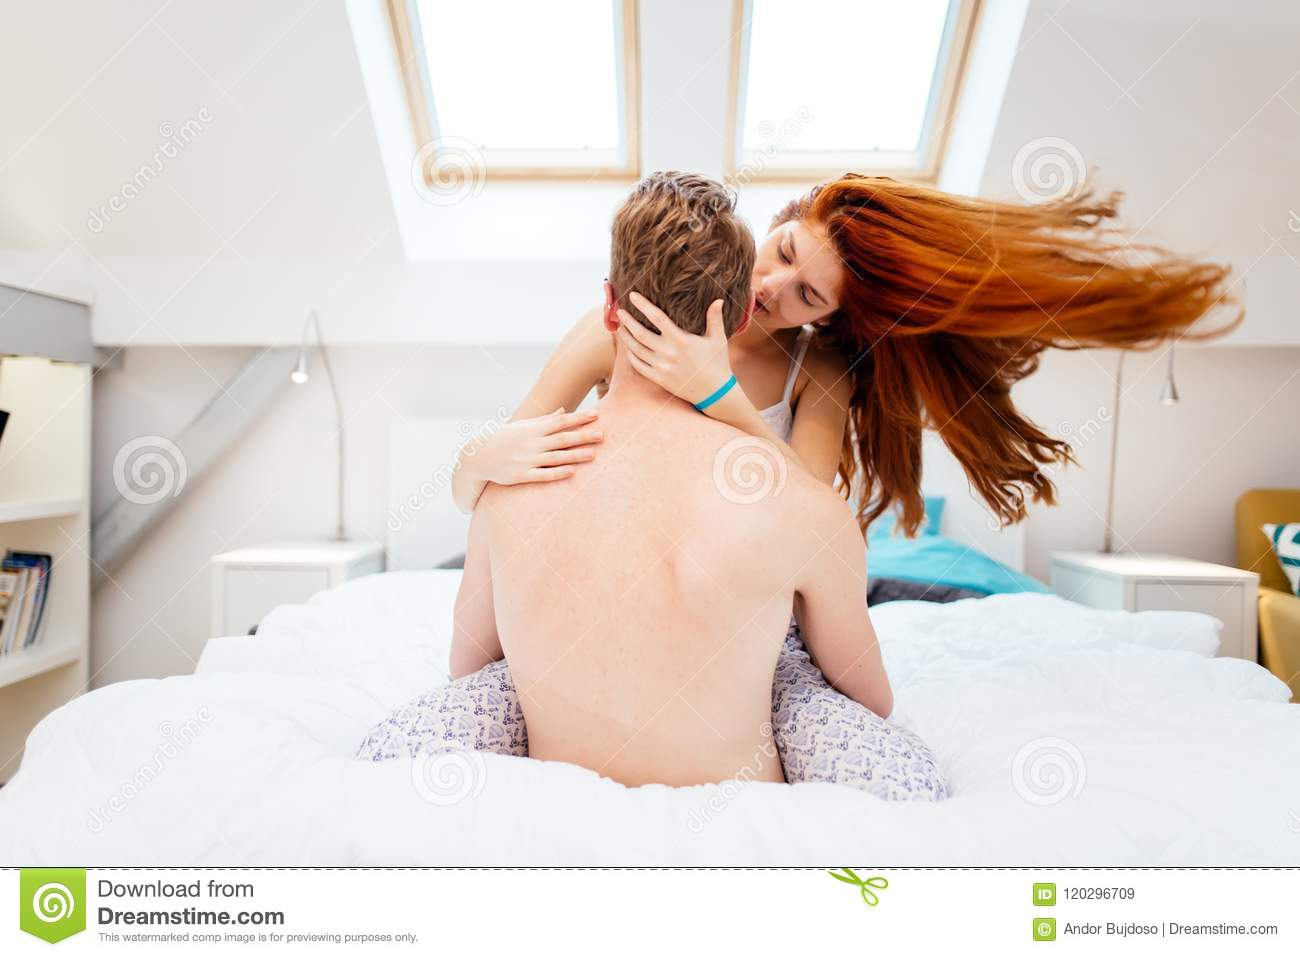 Beautiful Couple Romance In Bed Stock Image - Image of kiss